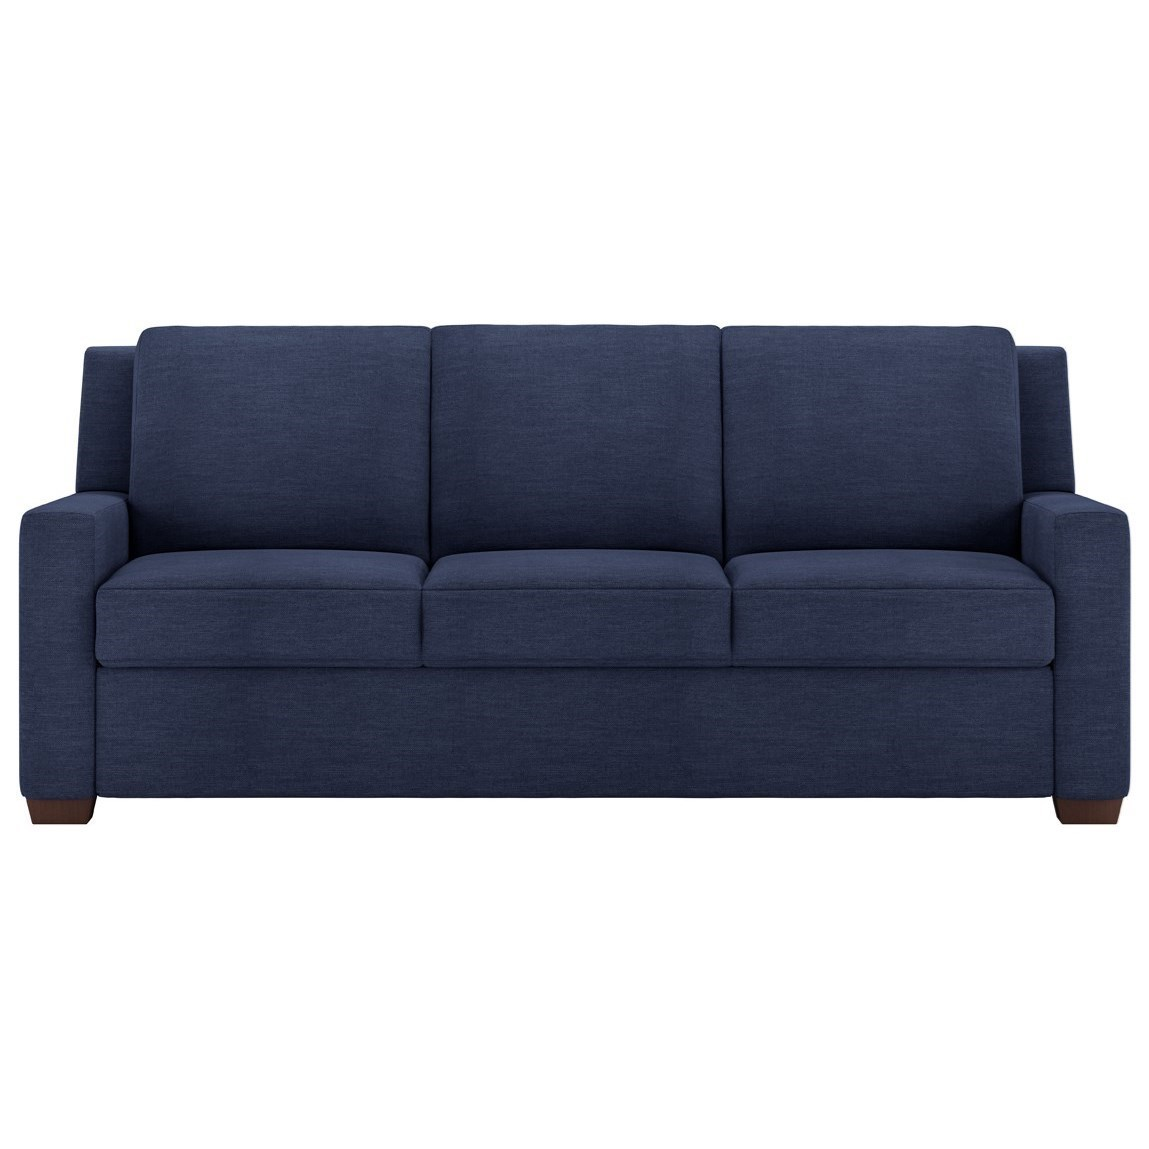 american leather lyons three seat queen